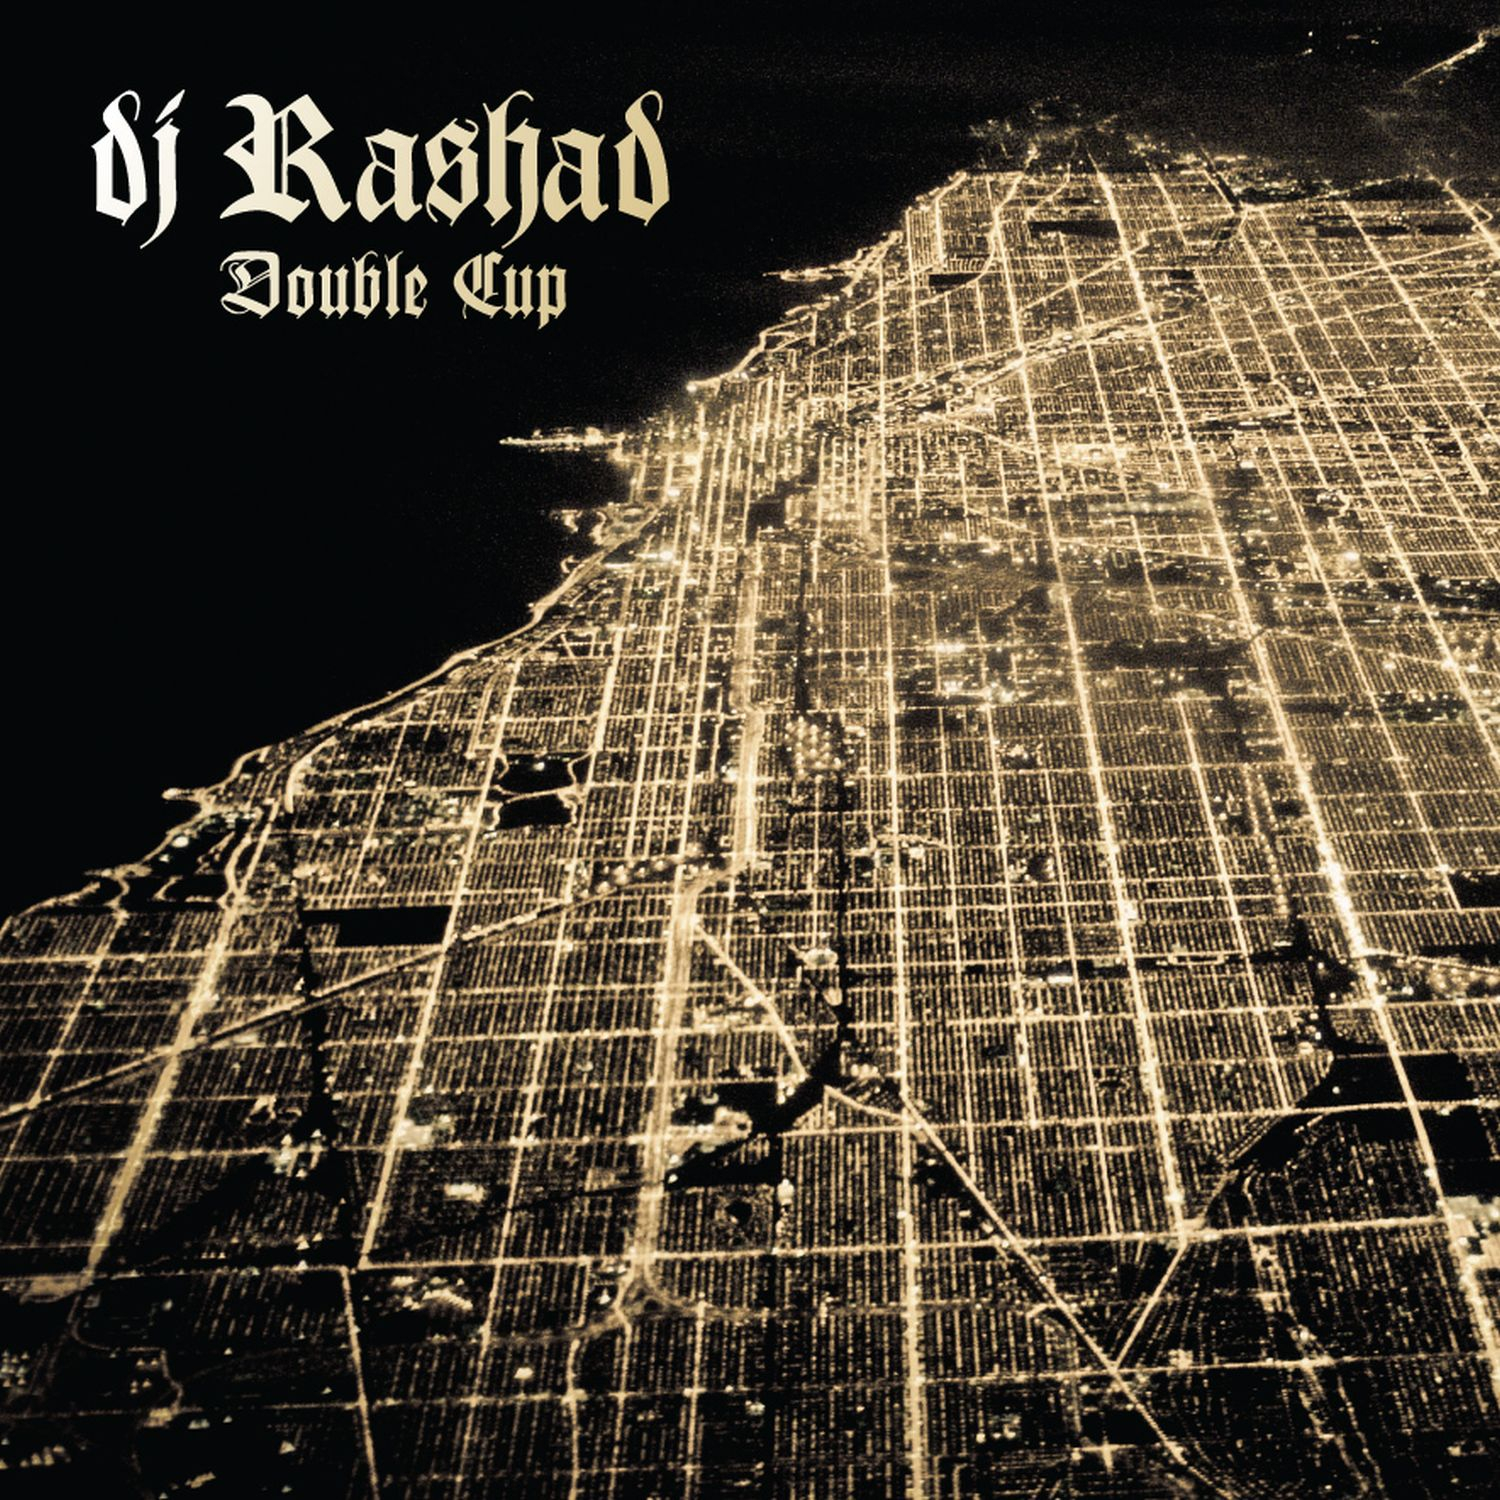 """Dj Rashad first LP """"Double Cup"""" released this week on Hyperdub."""